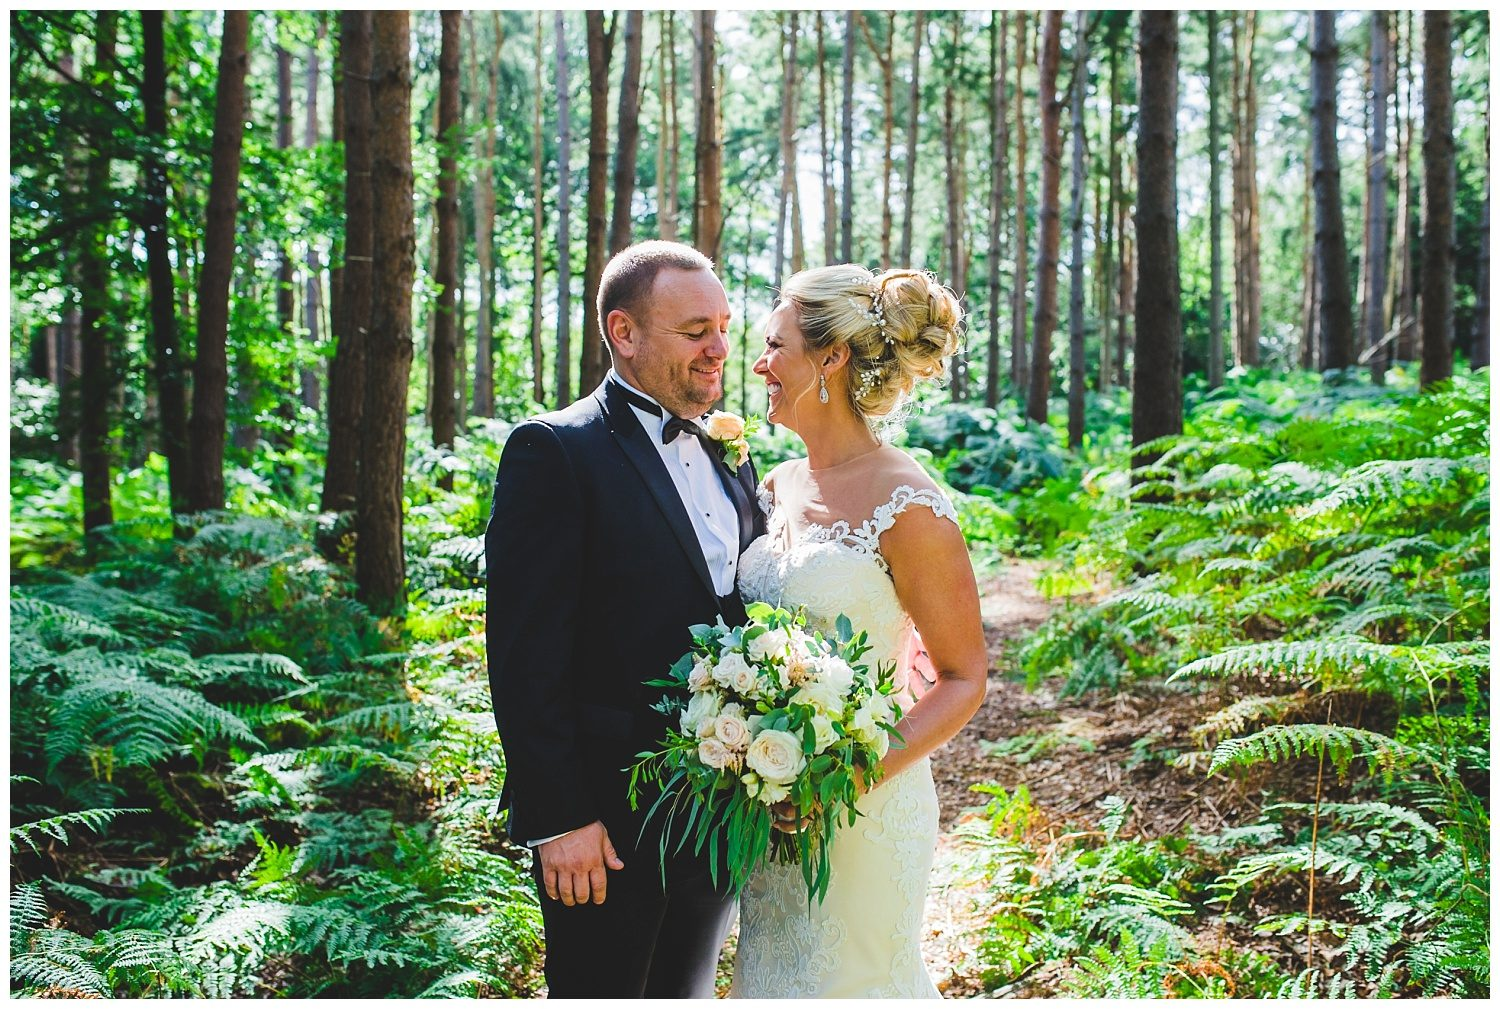 Bride and groom laughing in the woods at Peckforton Castle